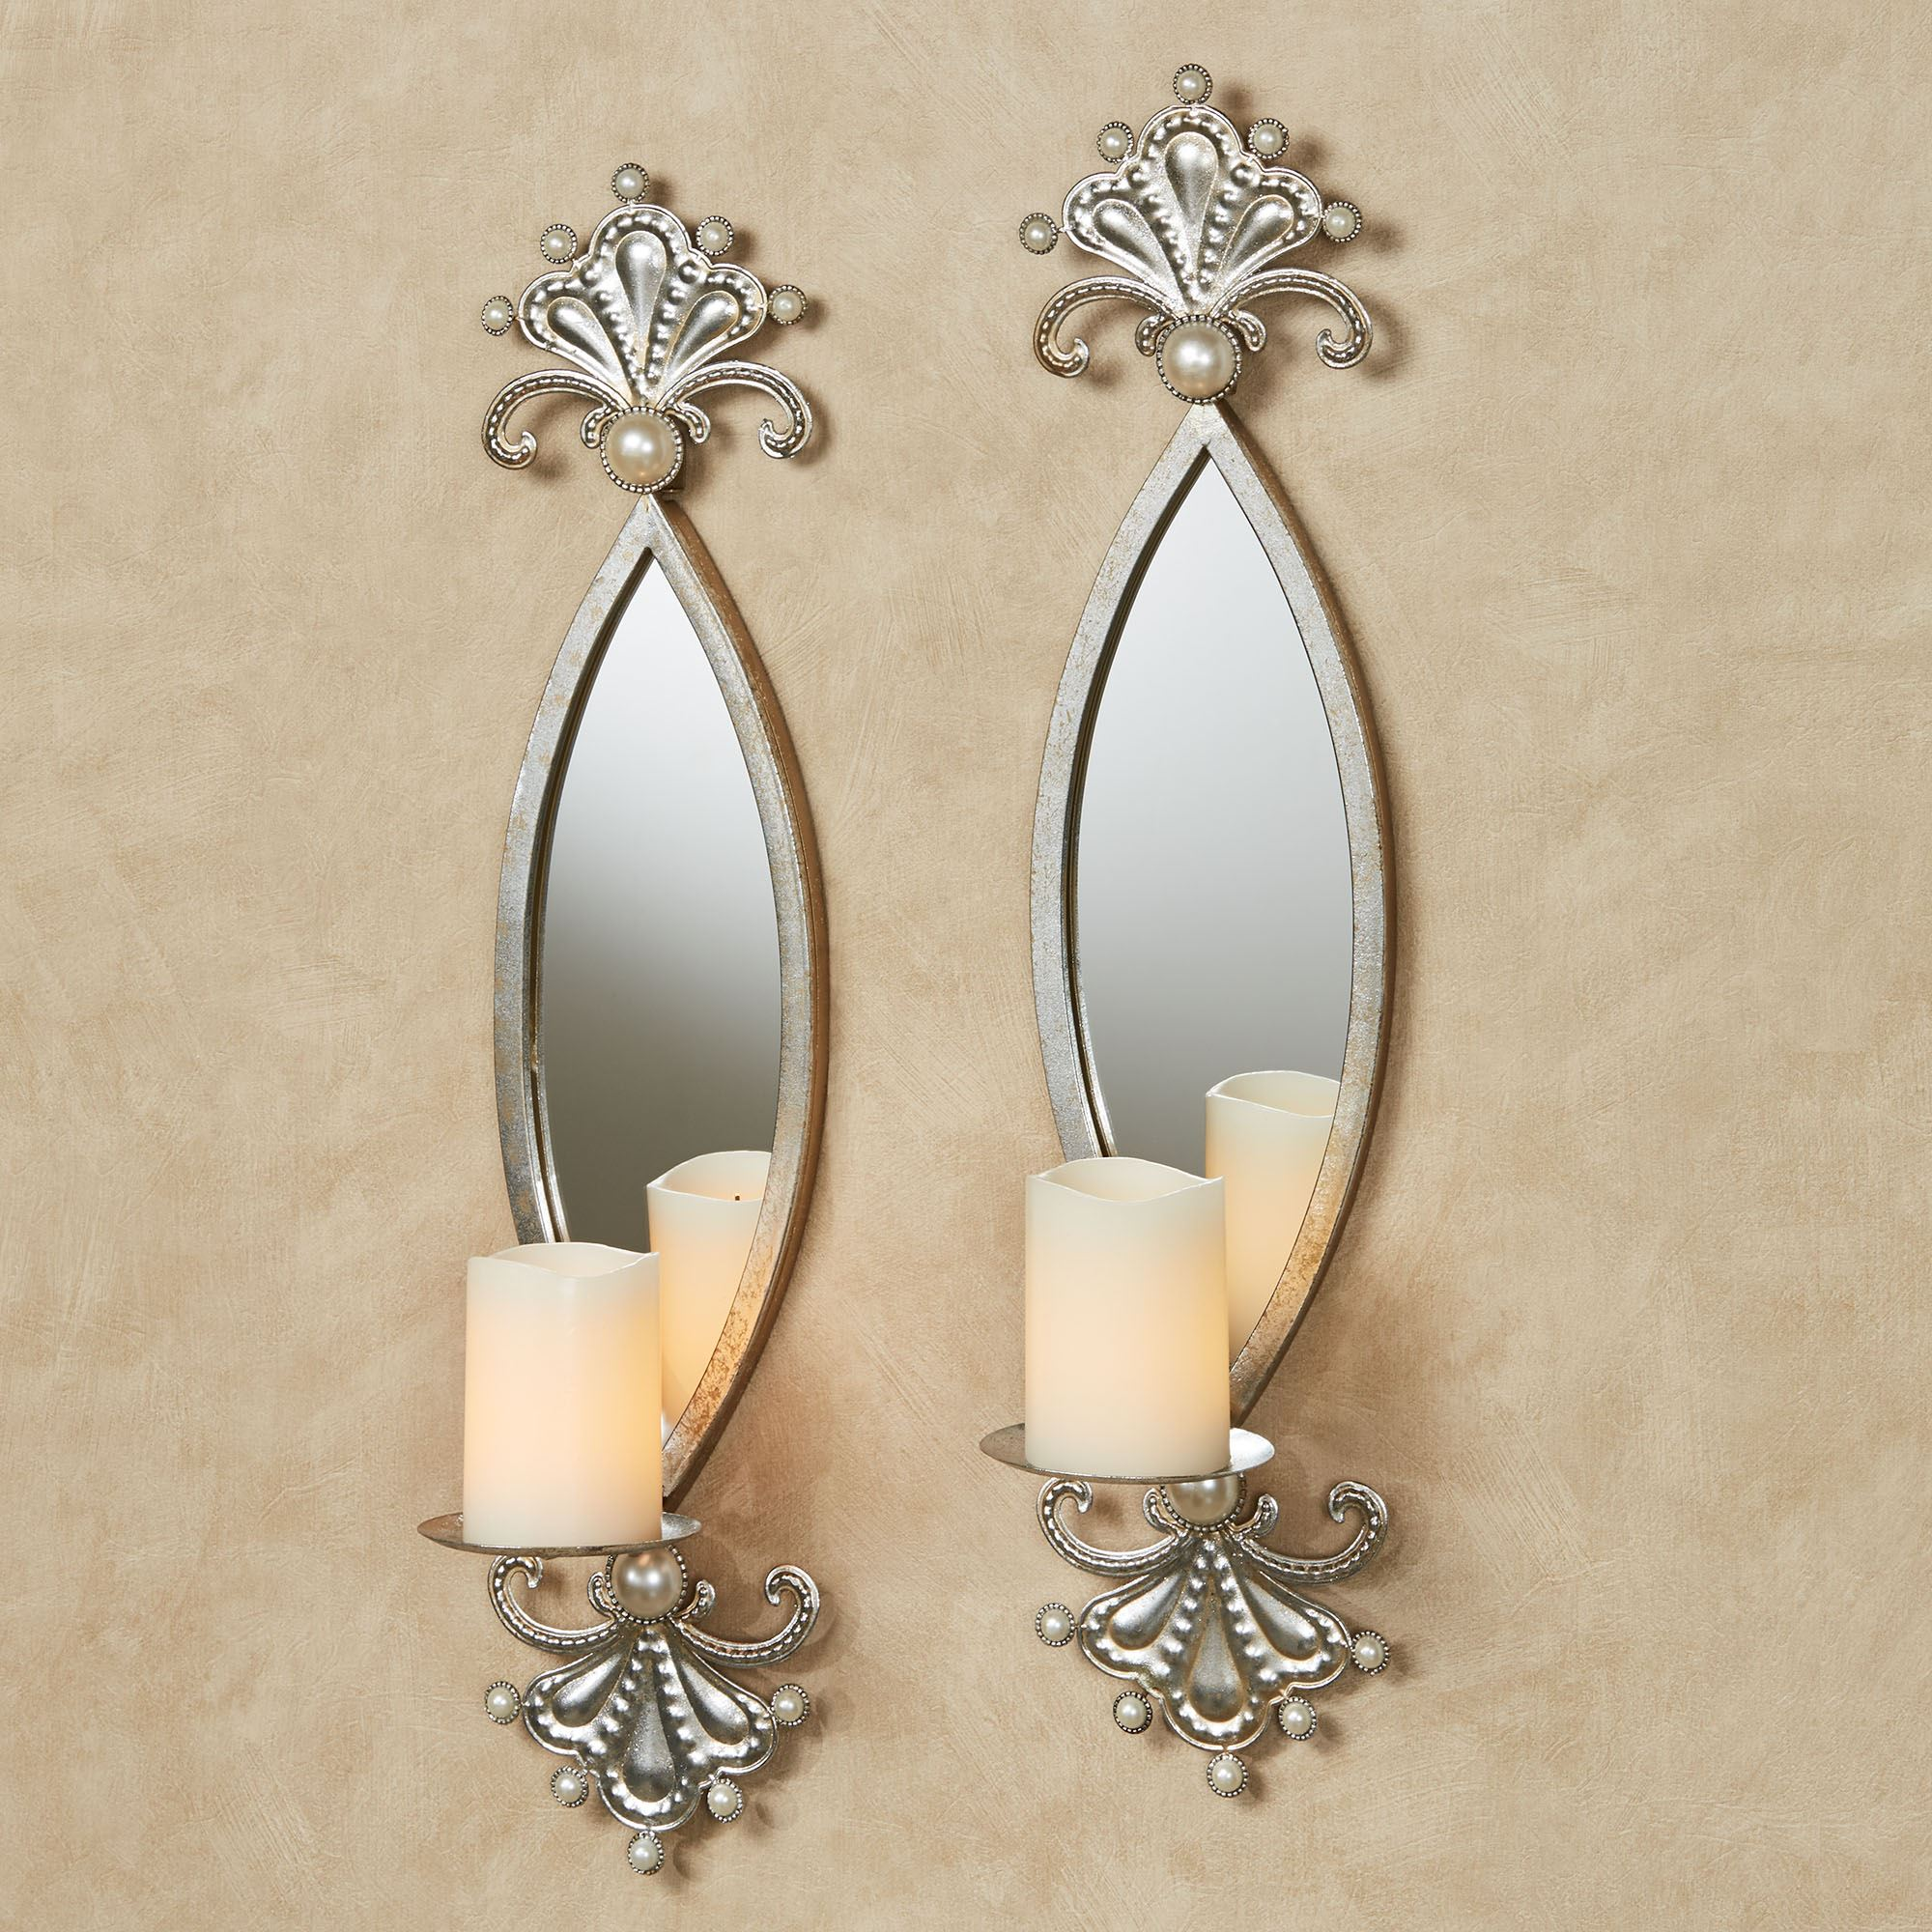 Giorgianna Pearl Mirrored Wall Sconce Pair